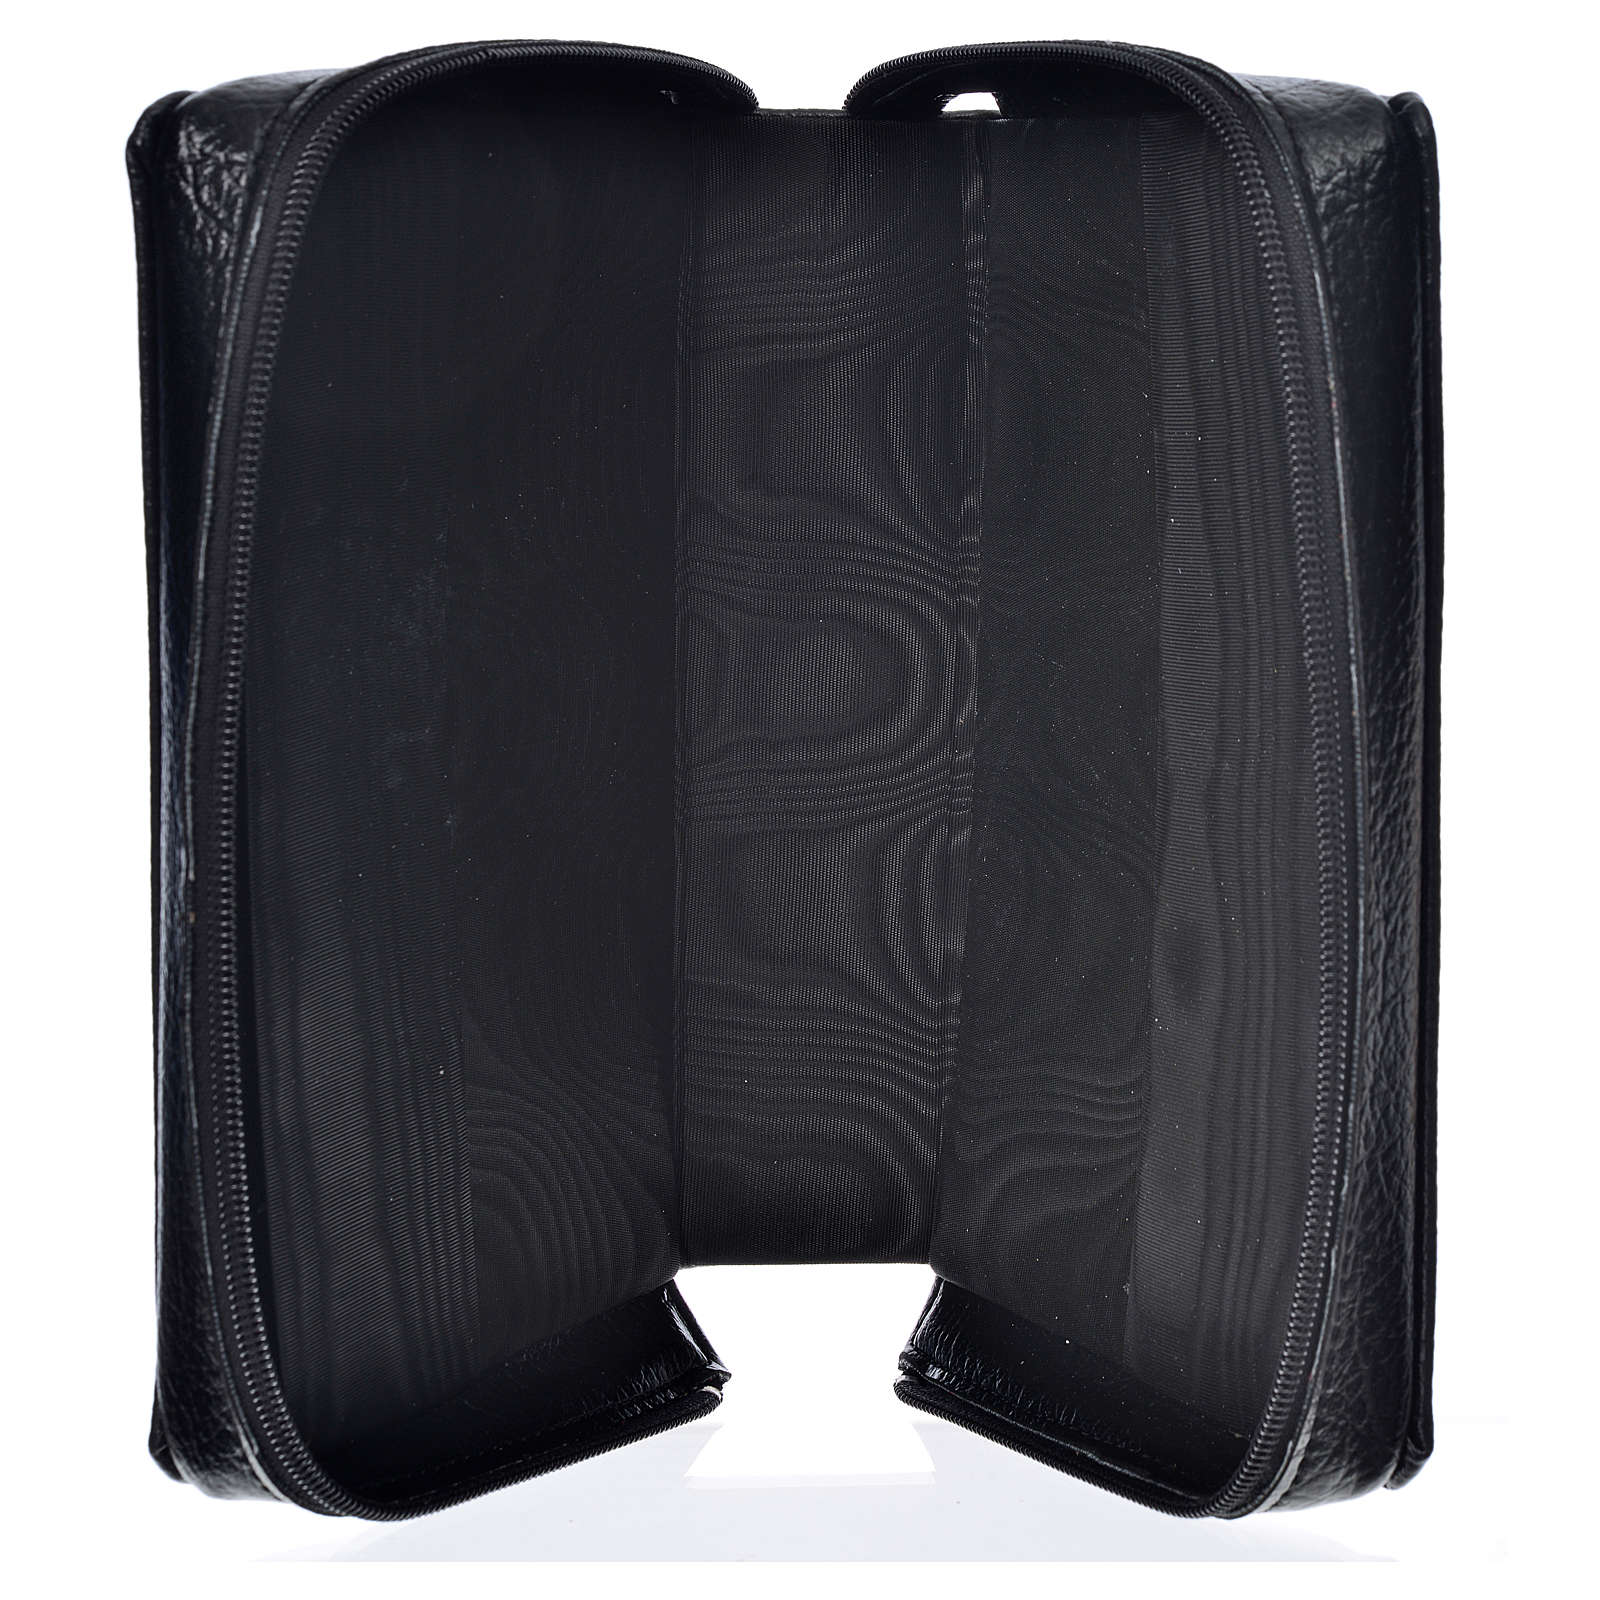 Liturgy of the Hours cover, black bonded leather 4